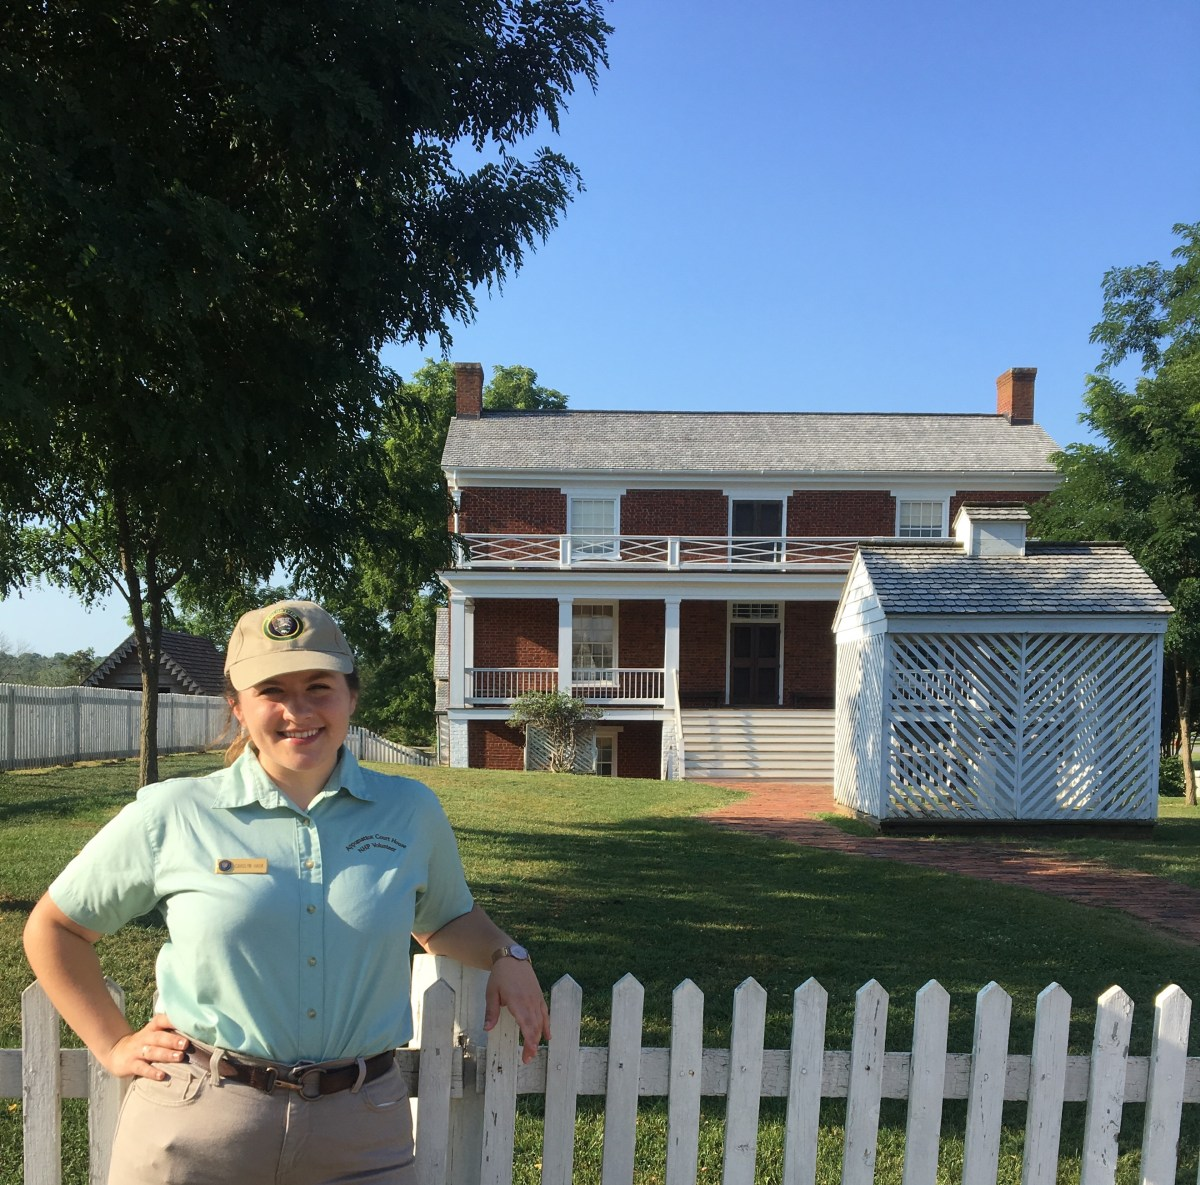 The McLean House: Symbol of Reunification or Surrender Grounds?